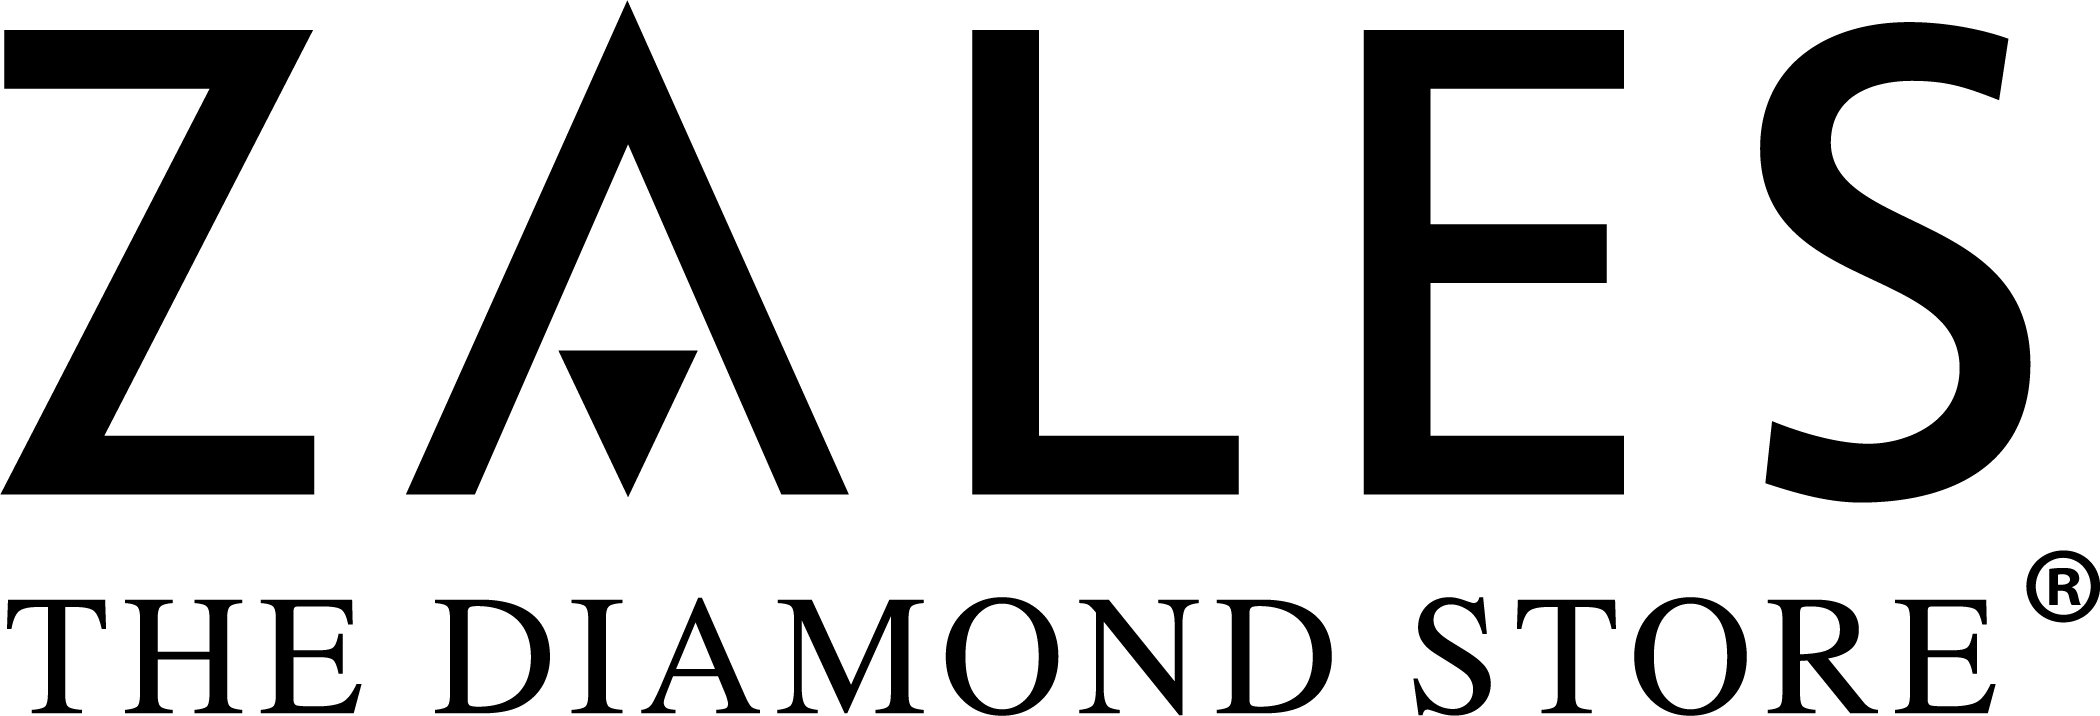 Black Friday Specials from Zales Jewelers